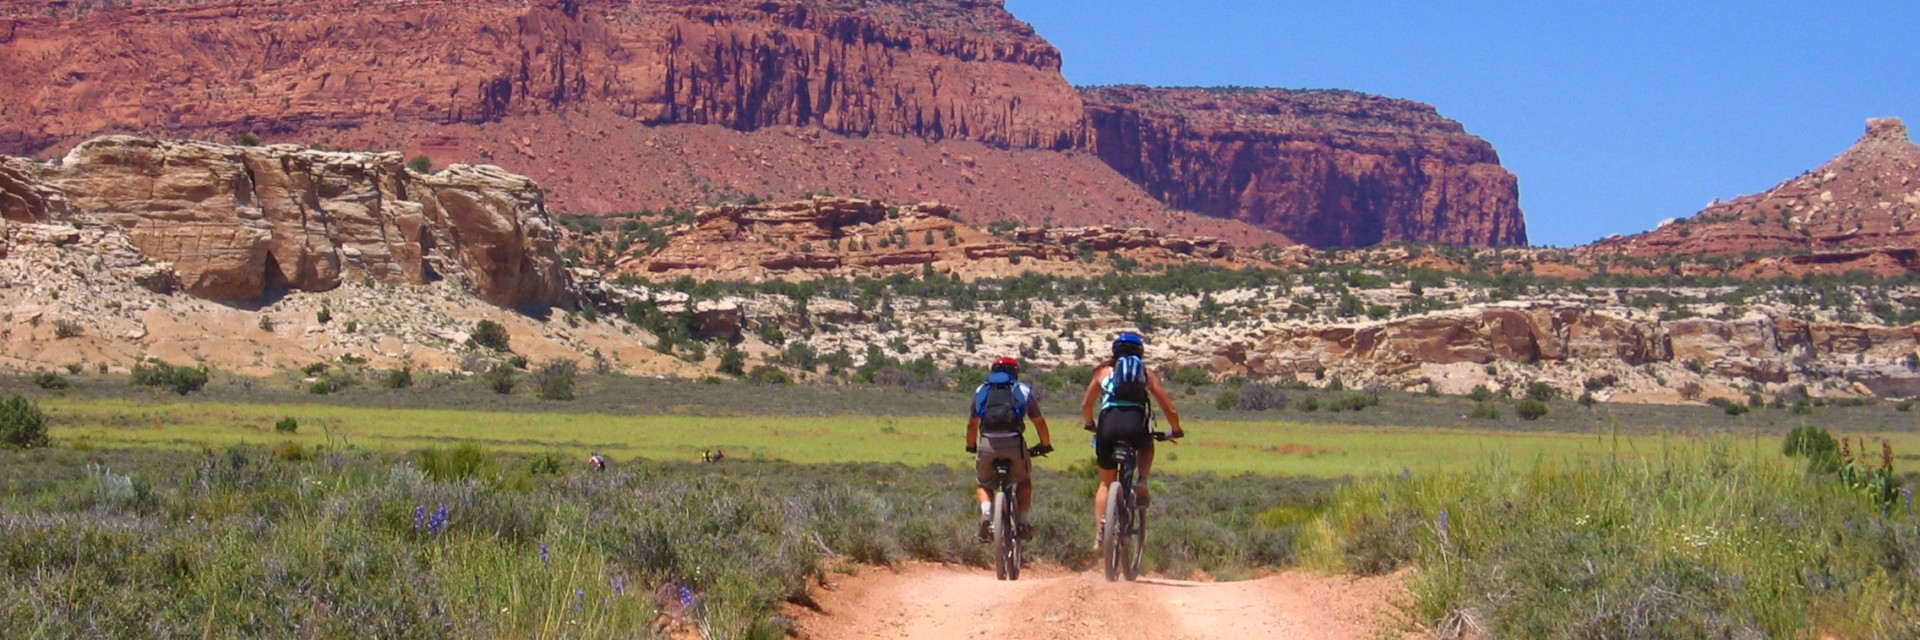 Riding between buttes in The Maze District, Canyonlands NP